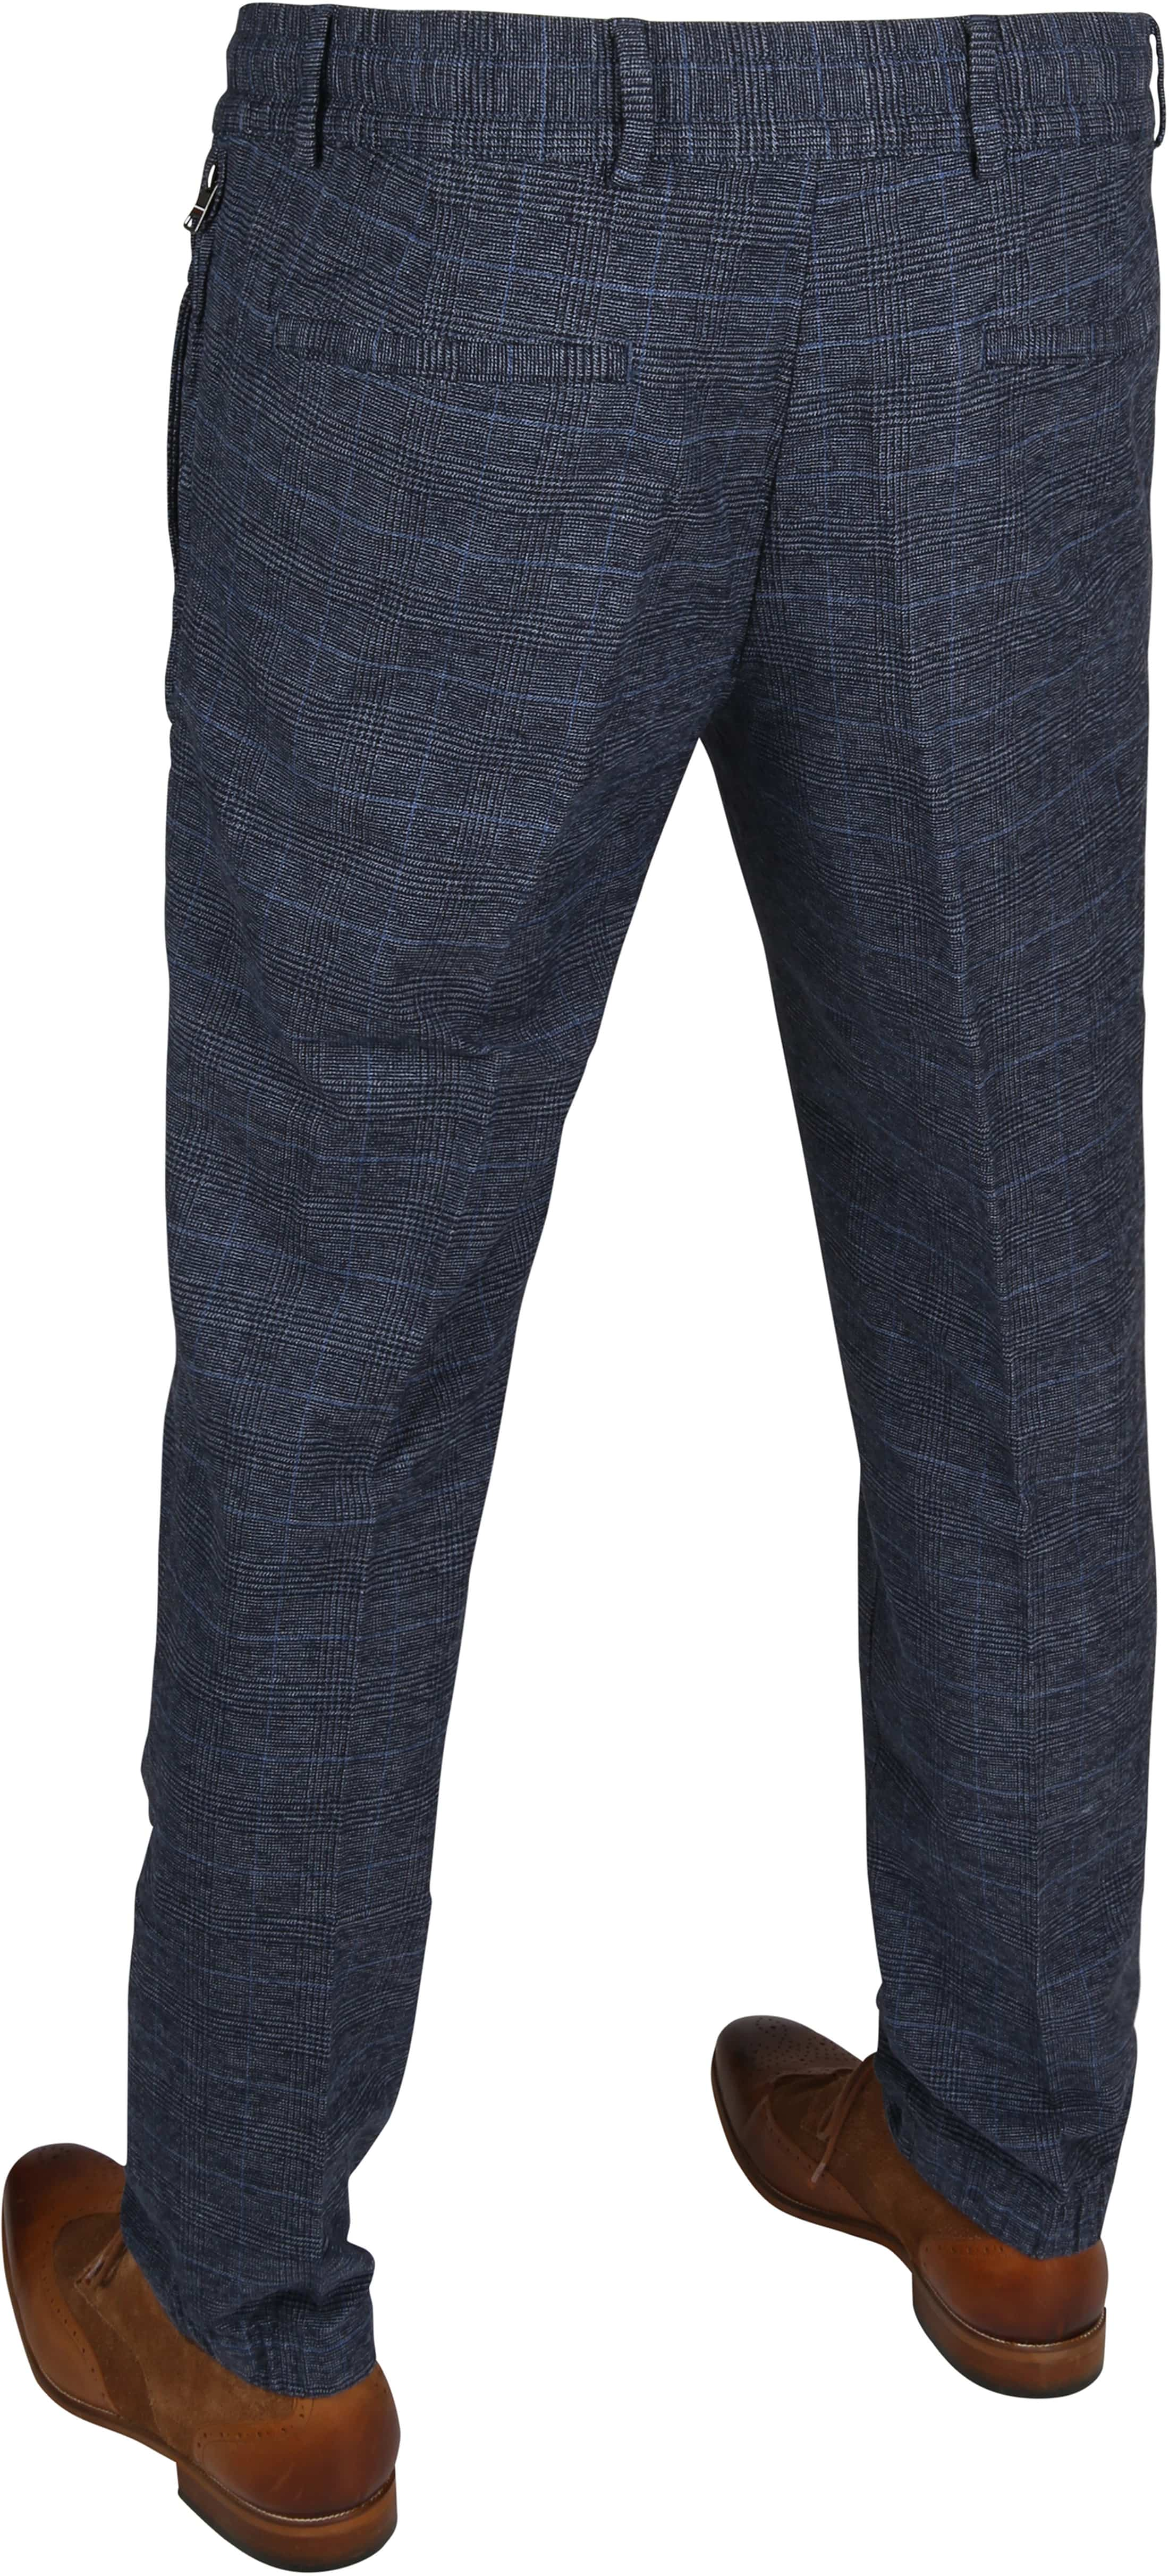 Tommy Hilfiger Active Pants Checks Navy foto 2